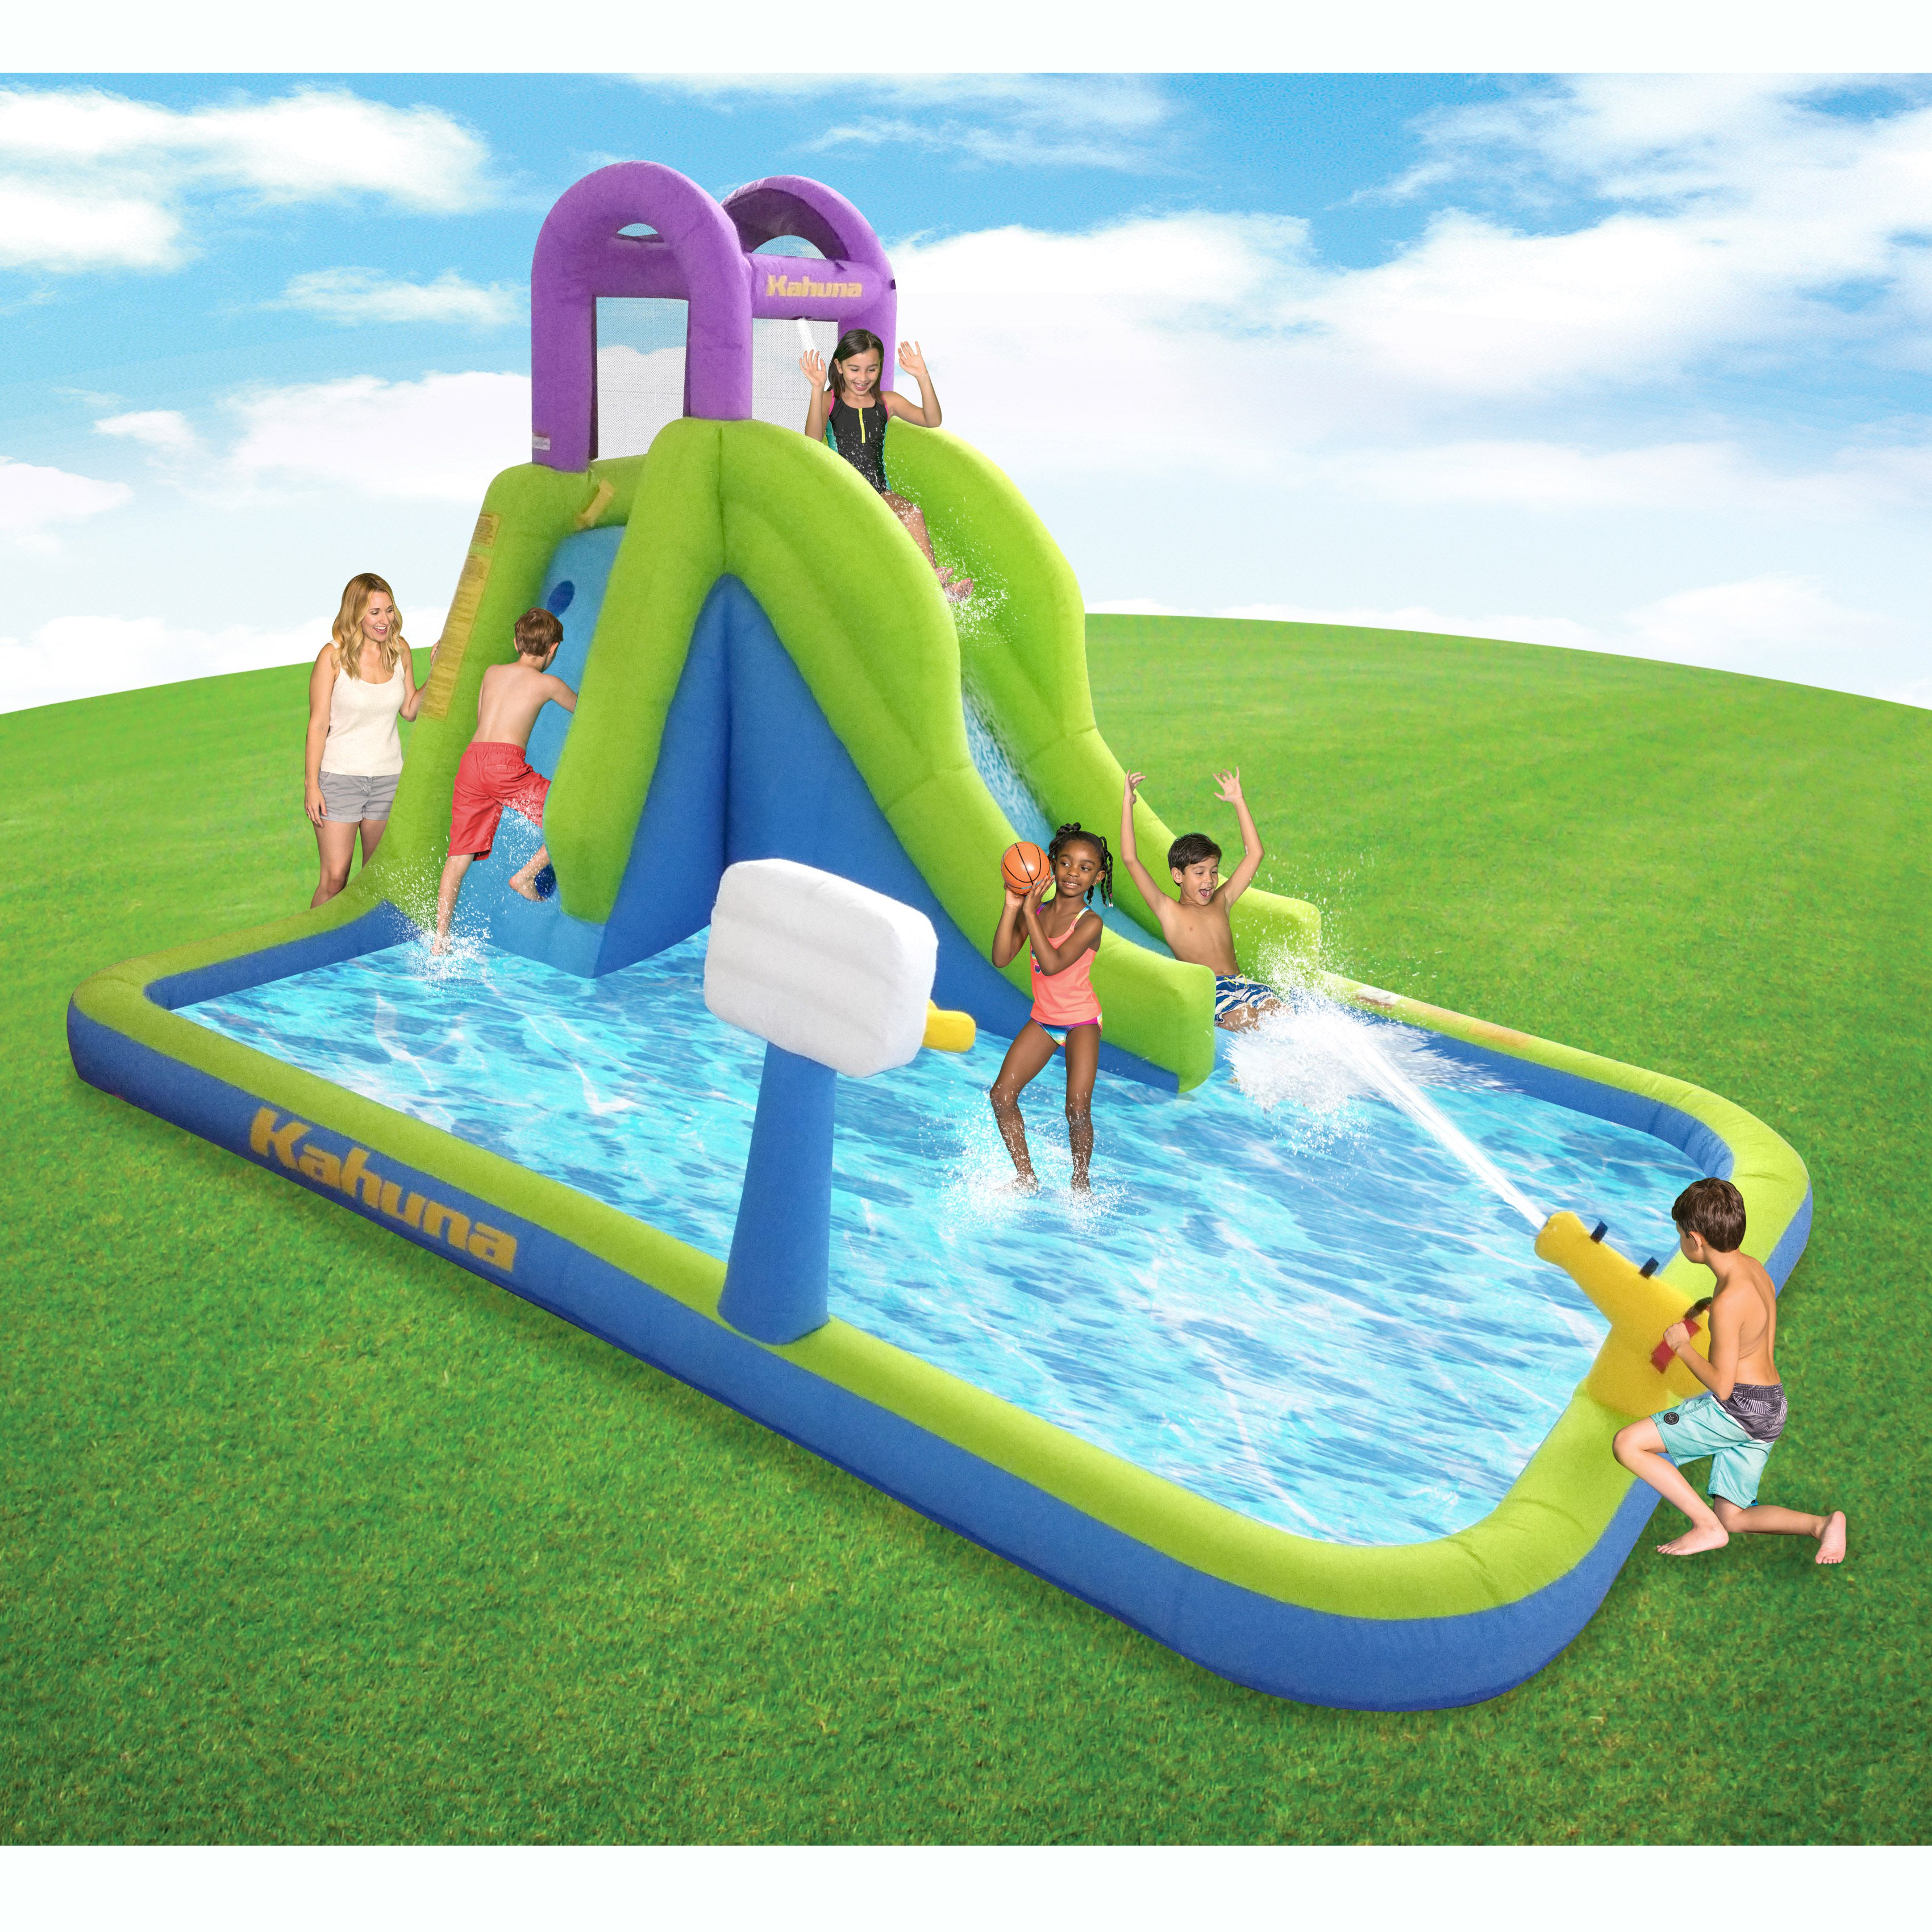 Best Water Slides For Backyard waterslides - walmart